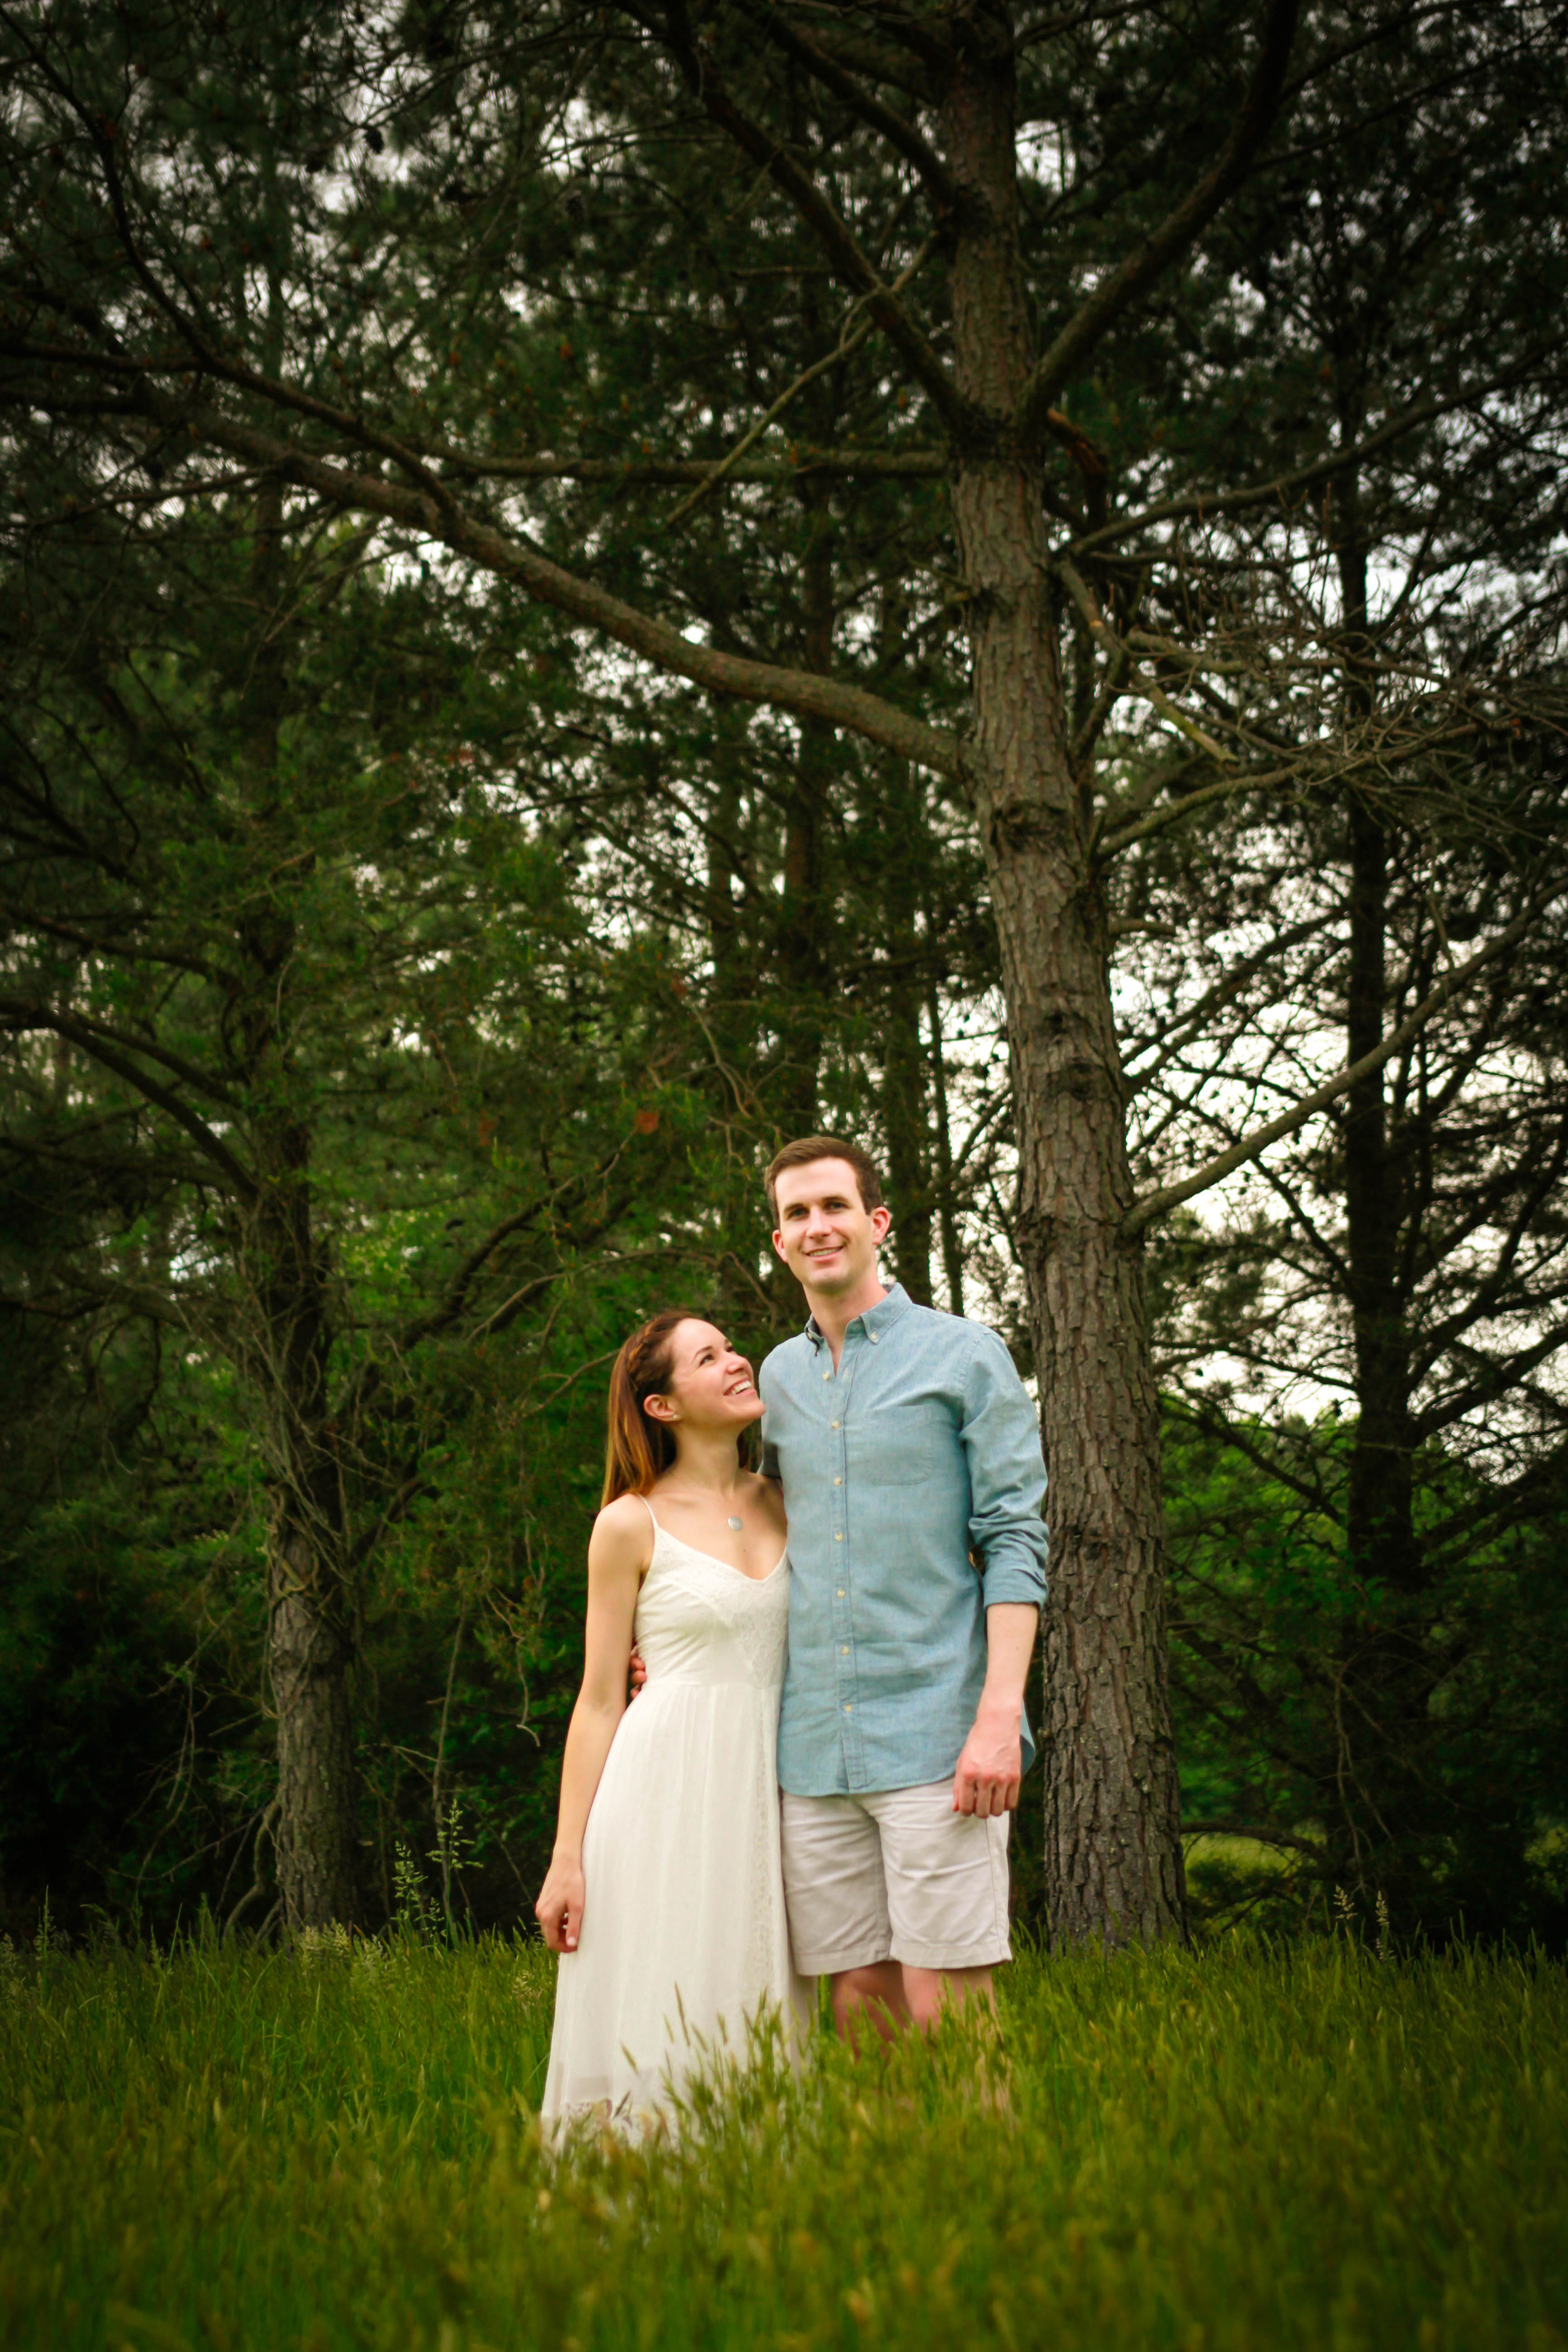 Maryland Engagement Photographer | Maral Noori Photography | Alix and Richard | Solomons Island | St Mary's County Wedding Photographer